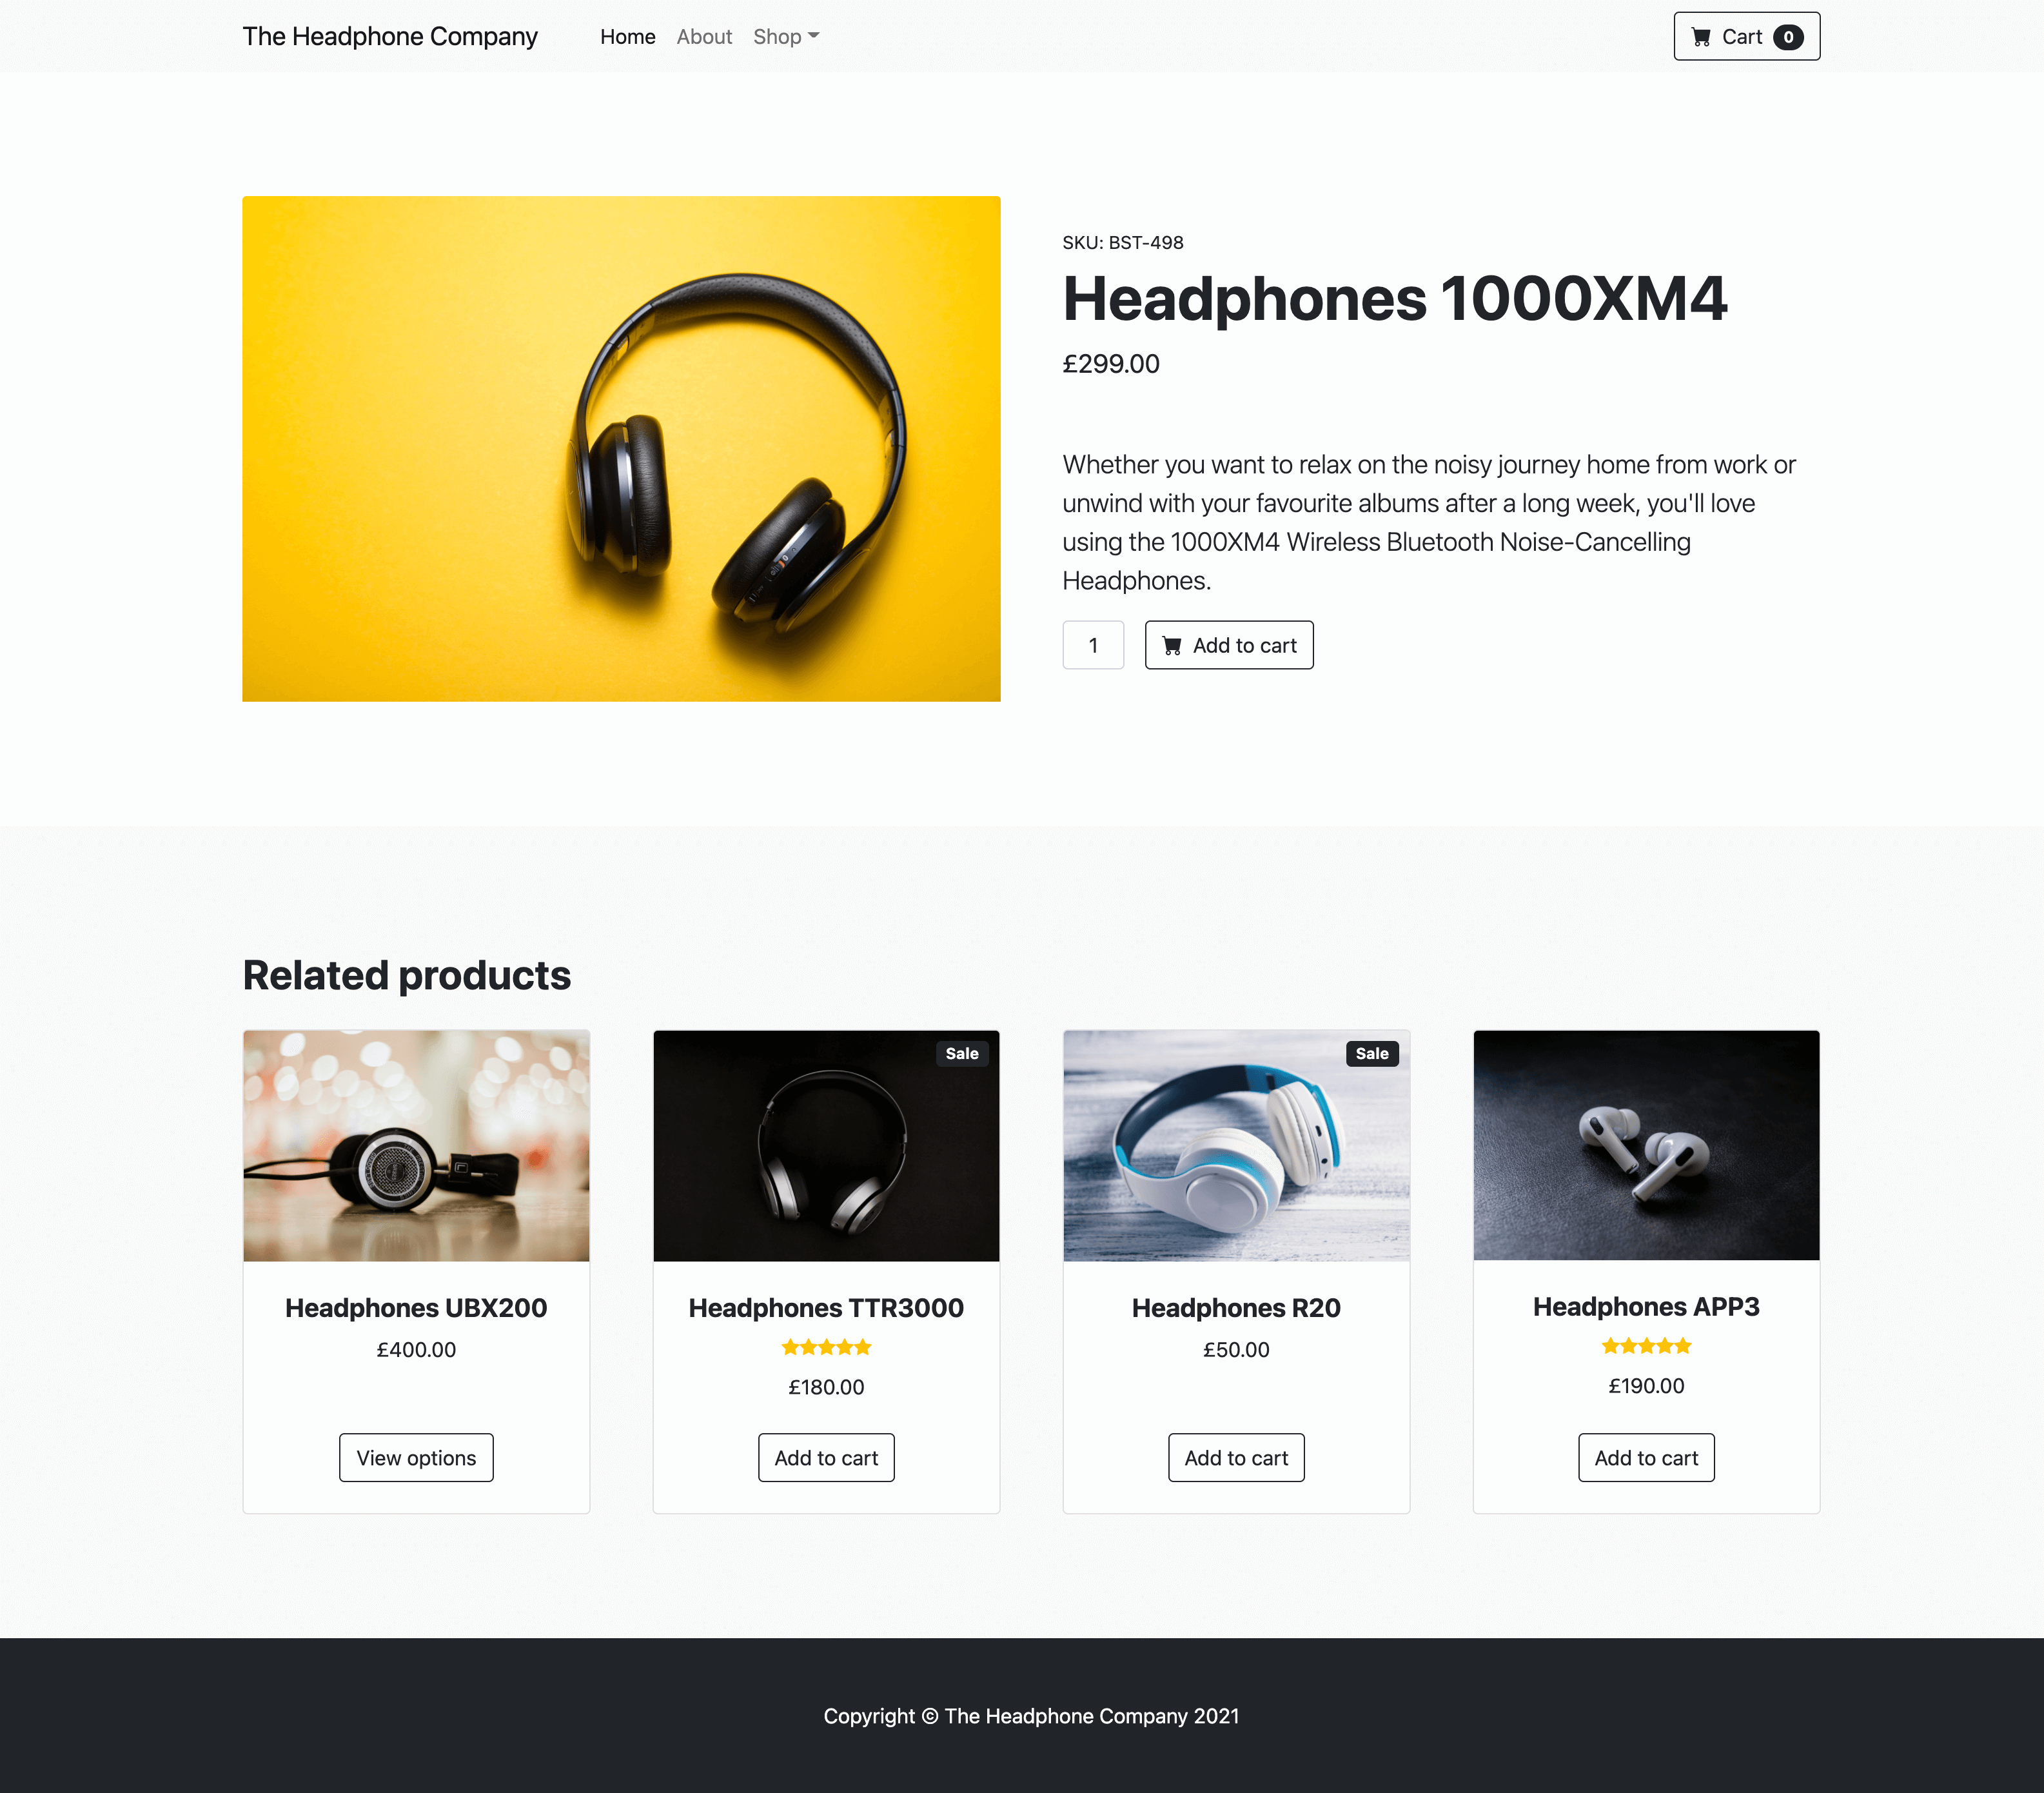 Website version B - Example website called The Headphone Company. Headphone product page.